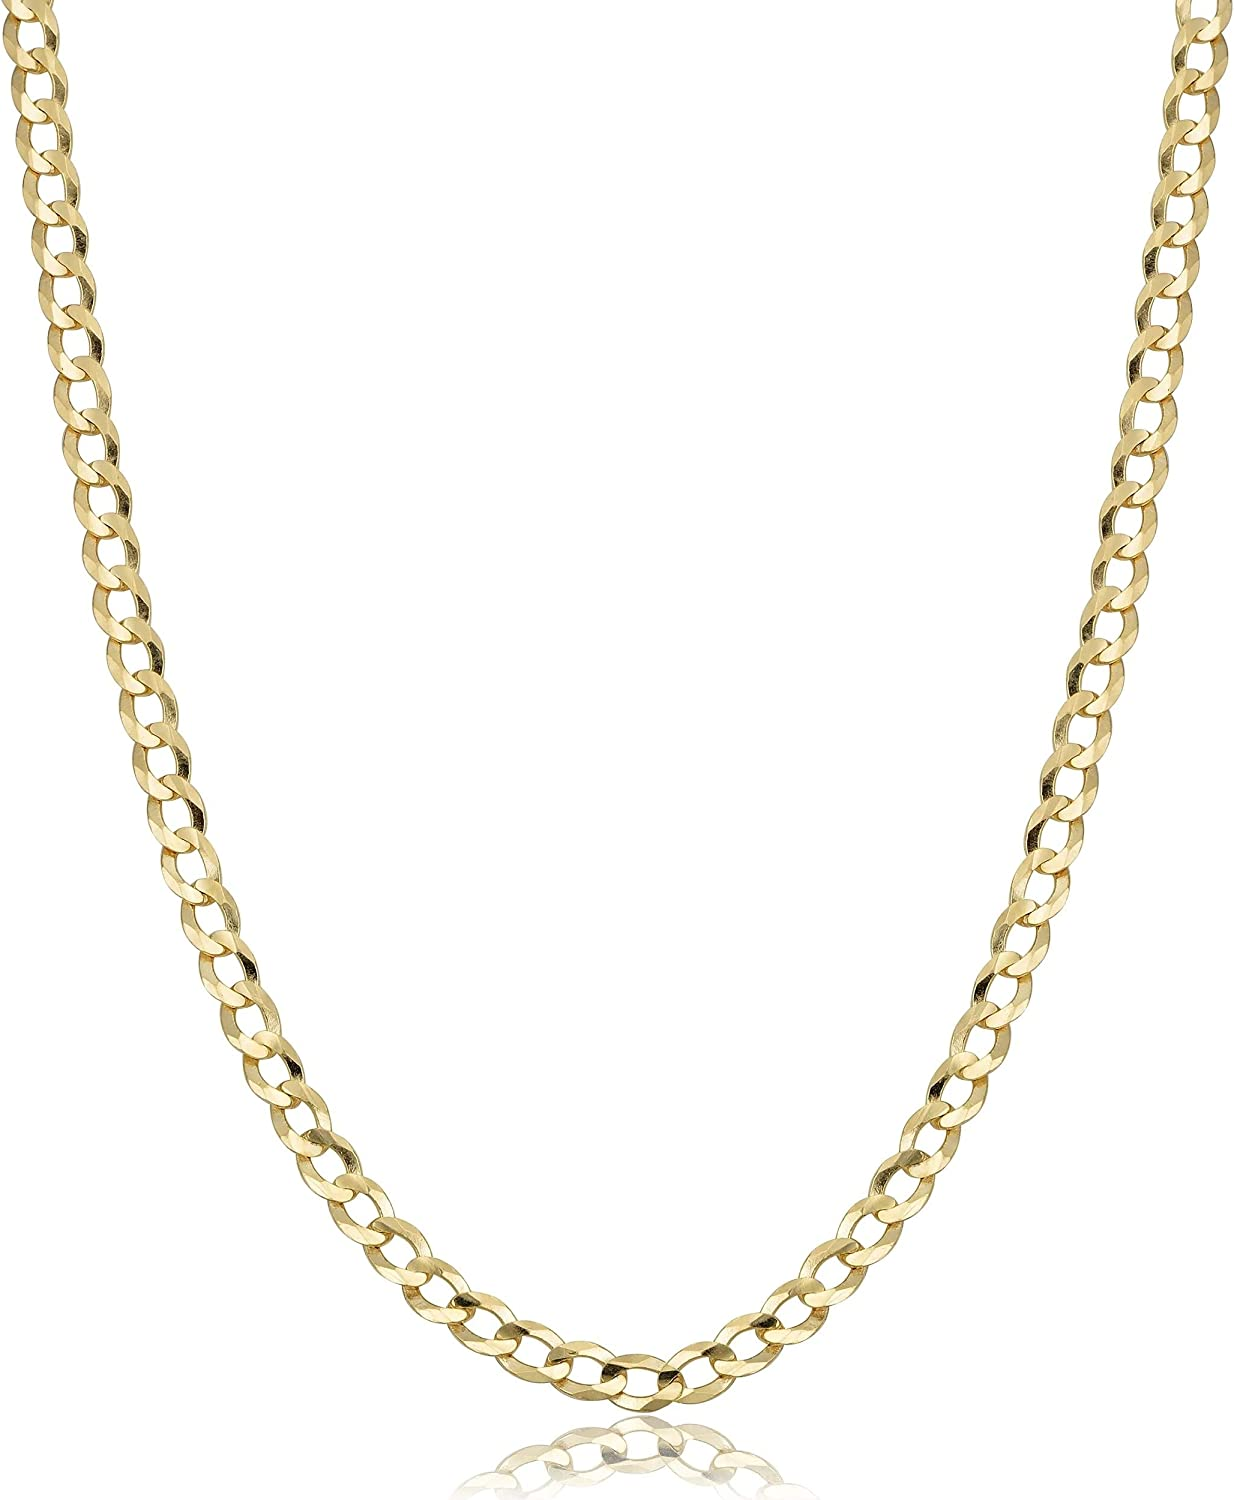 Verona Jewelers 10k Gold 4 5mm Italian Cuban Curb Link Necklace 10k Gold Necklaces 10k Cuban Necklace 10k Gold Curb Chain 10k Gold Chain 10k Link 16 2 5mm Amazon Com